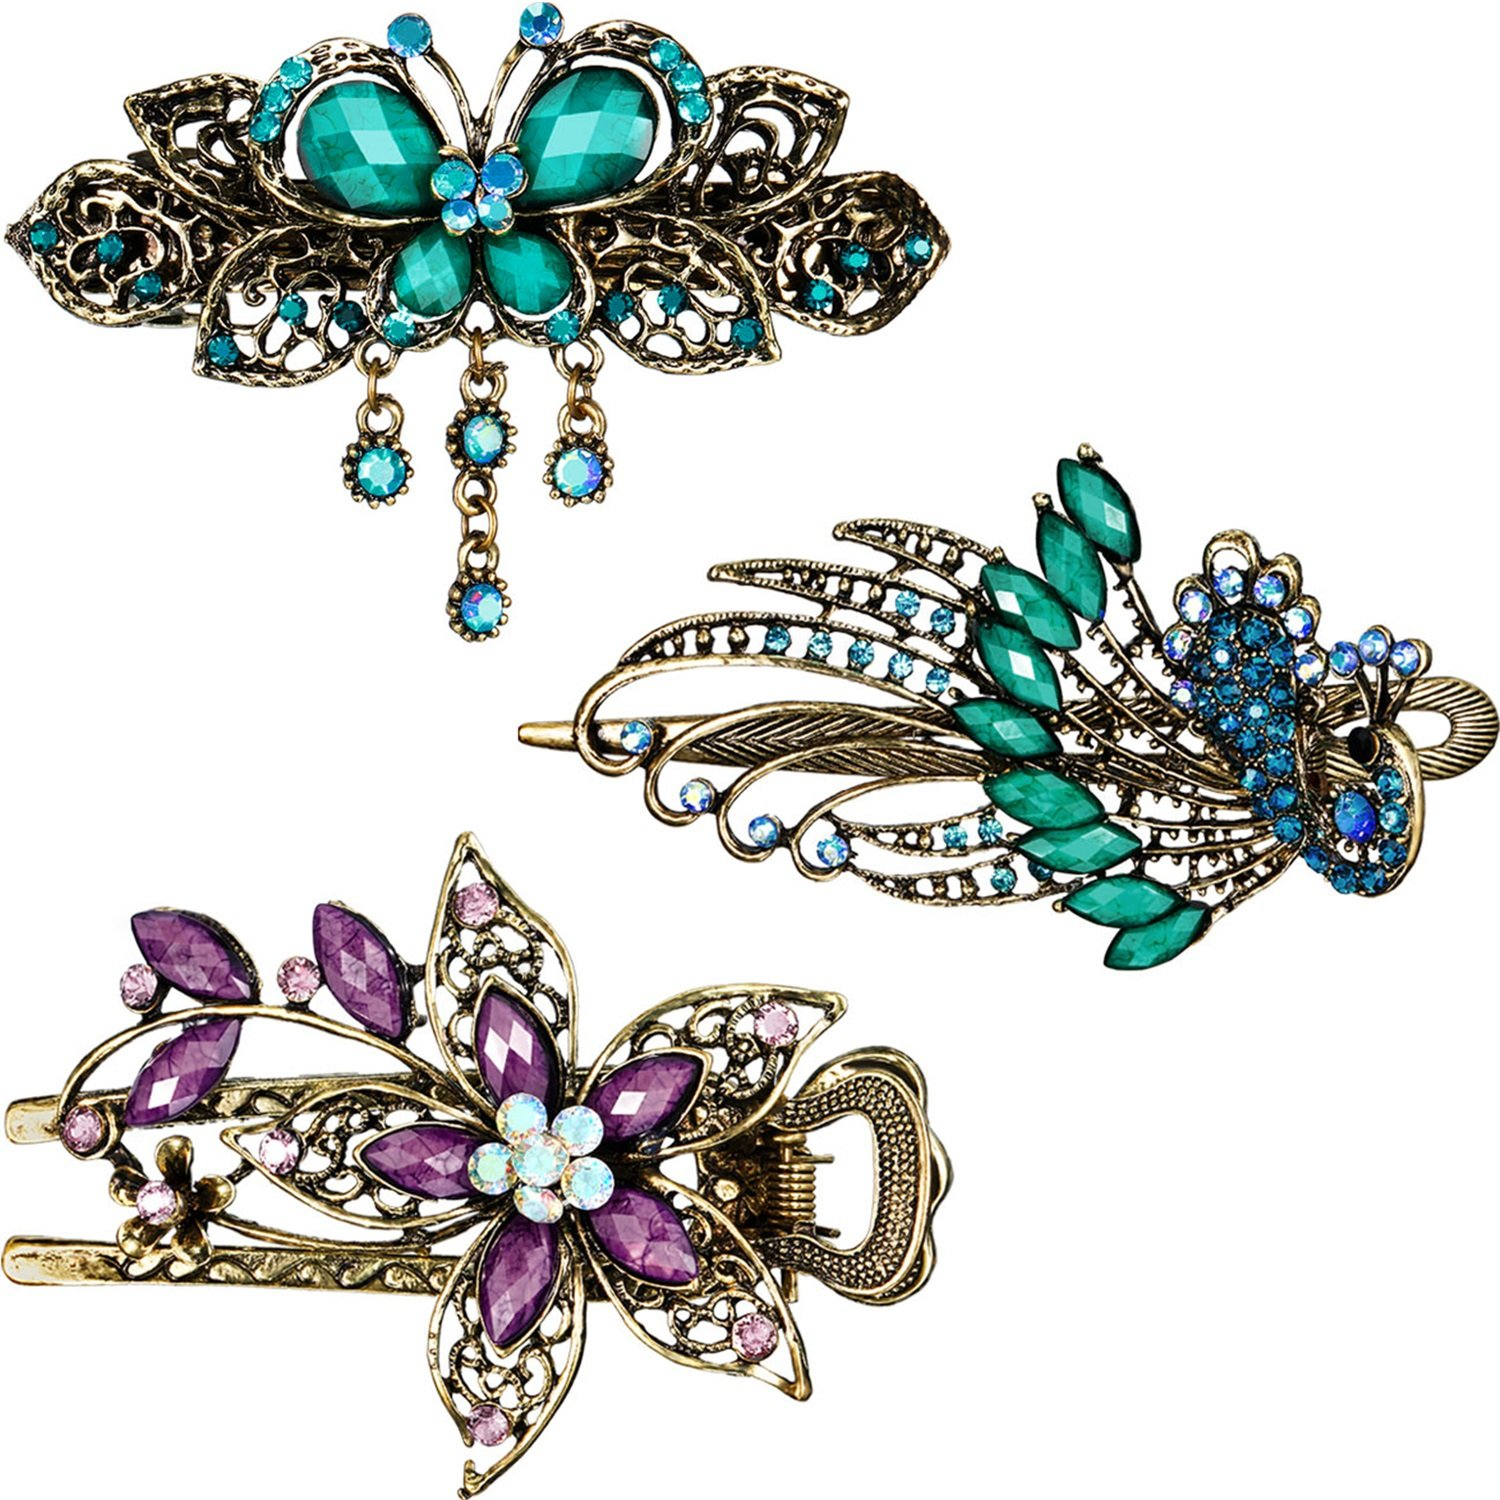 BARRETTES CLIPS DIAMANTE CRYSTAL BARRETTE HAIR CLIP VINTAGE LADIES HAIRCLIP 029